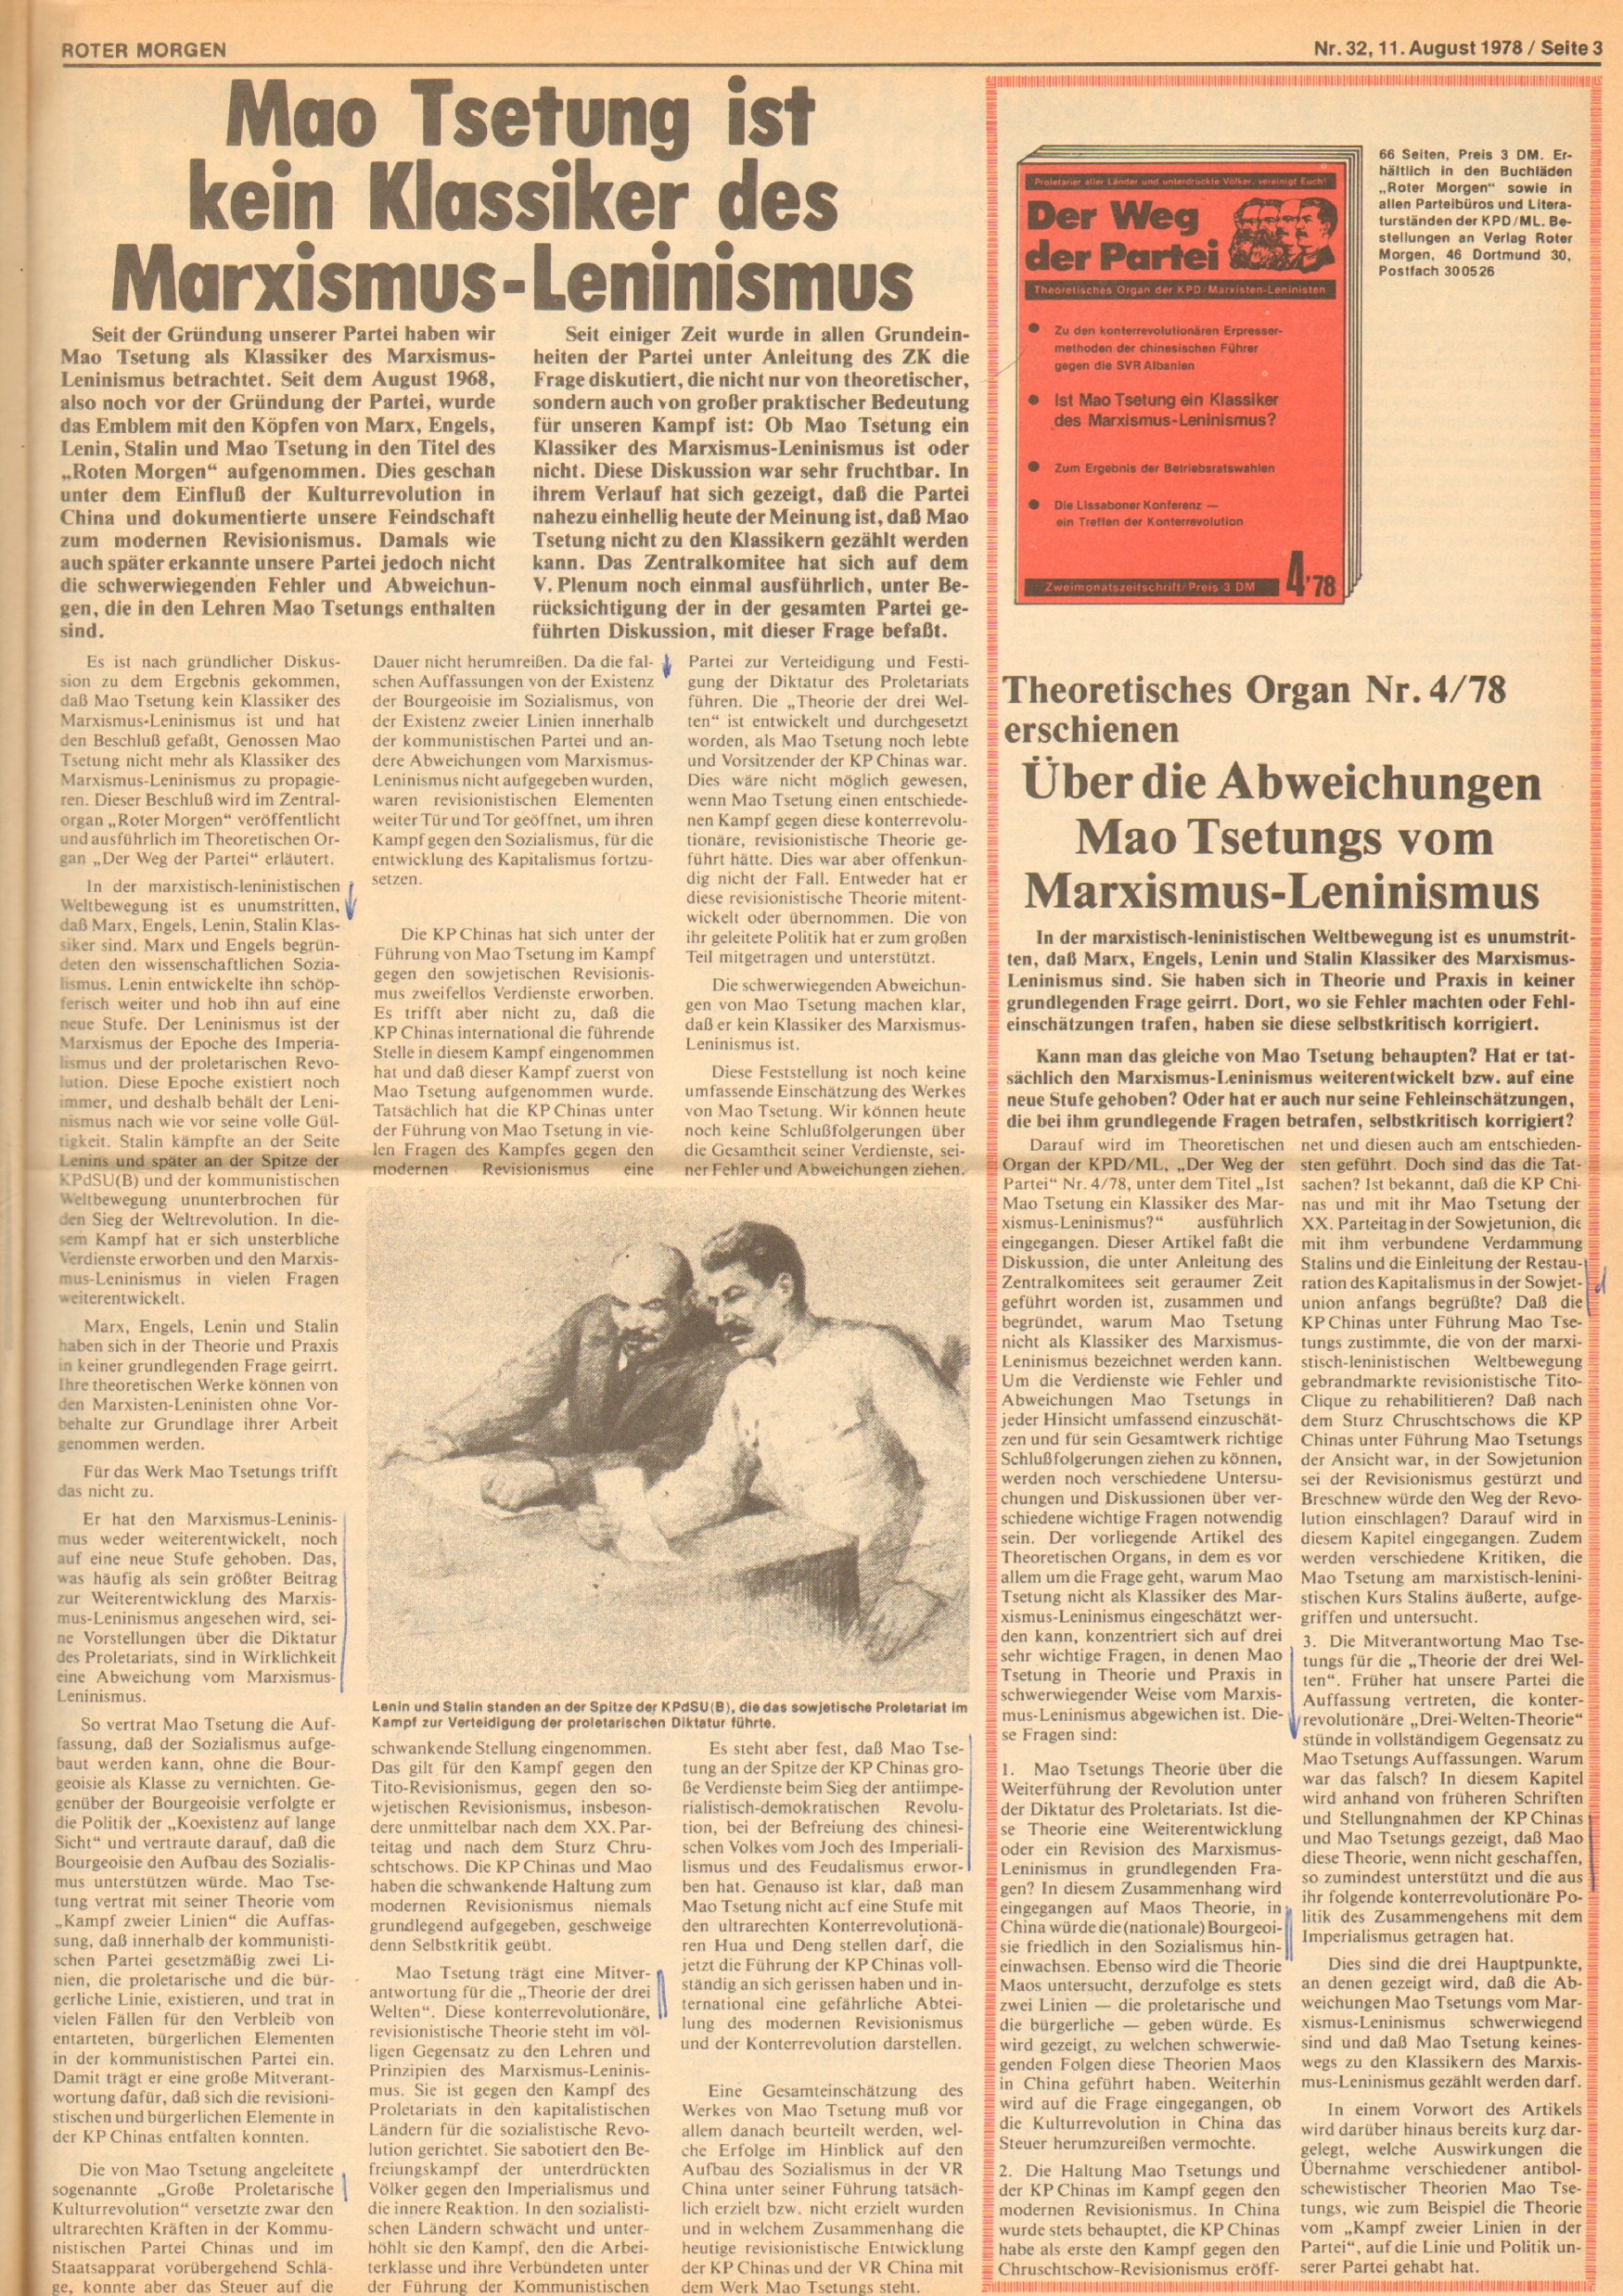 Roter Morgen, 12. Jg., 11. August 1978, Nr. 32, Seite 3